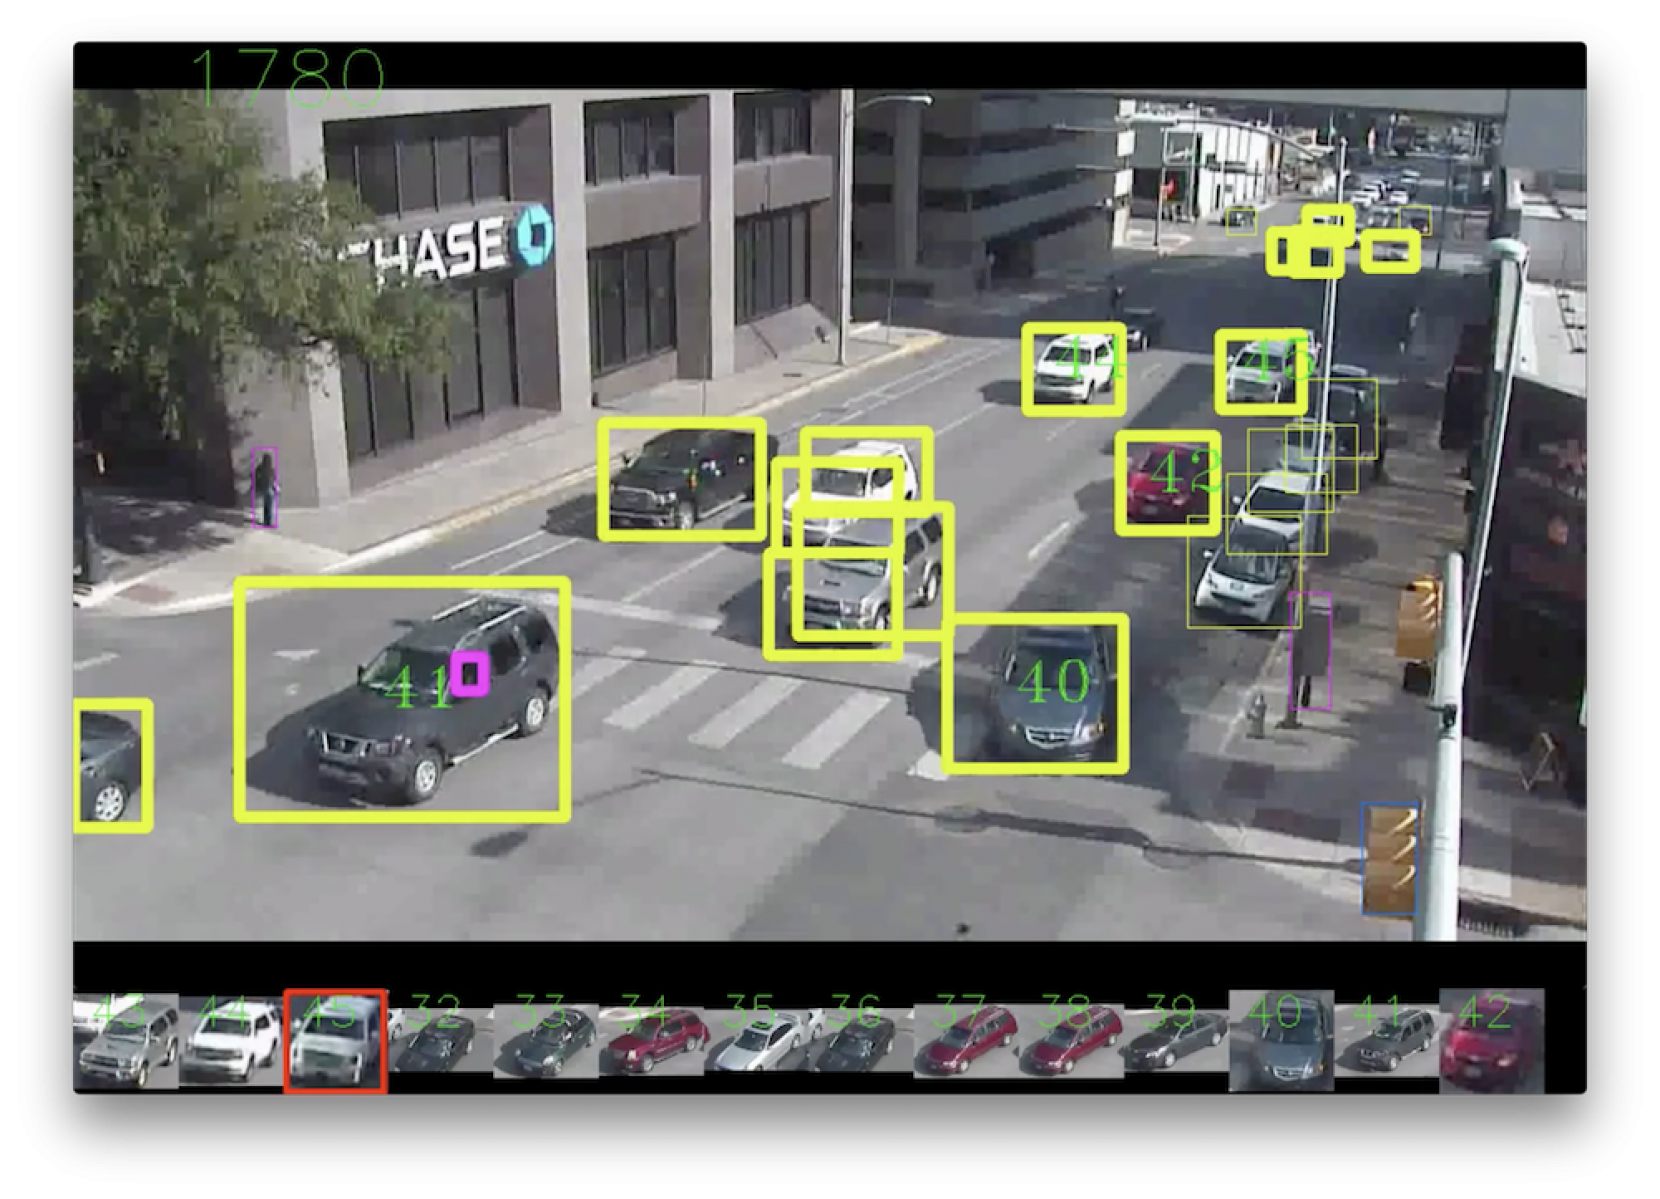 Clip cameras artificial intelligence. And supercomputers to help